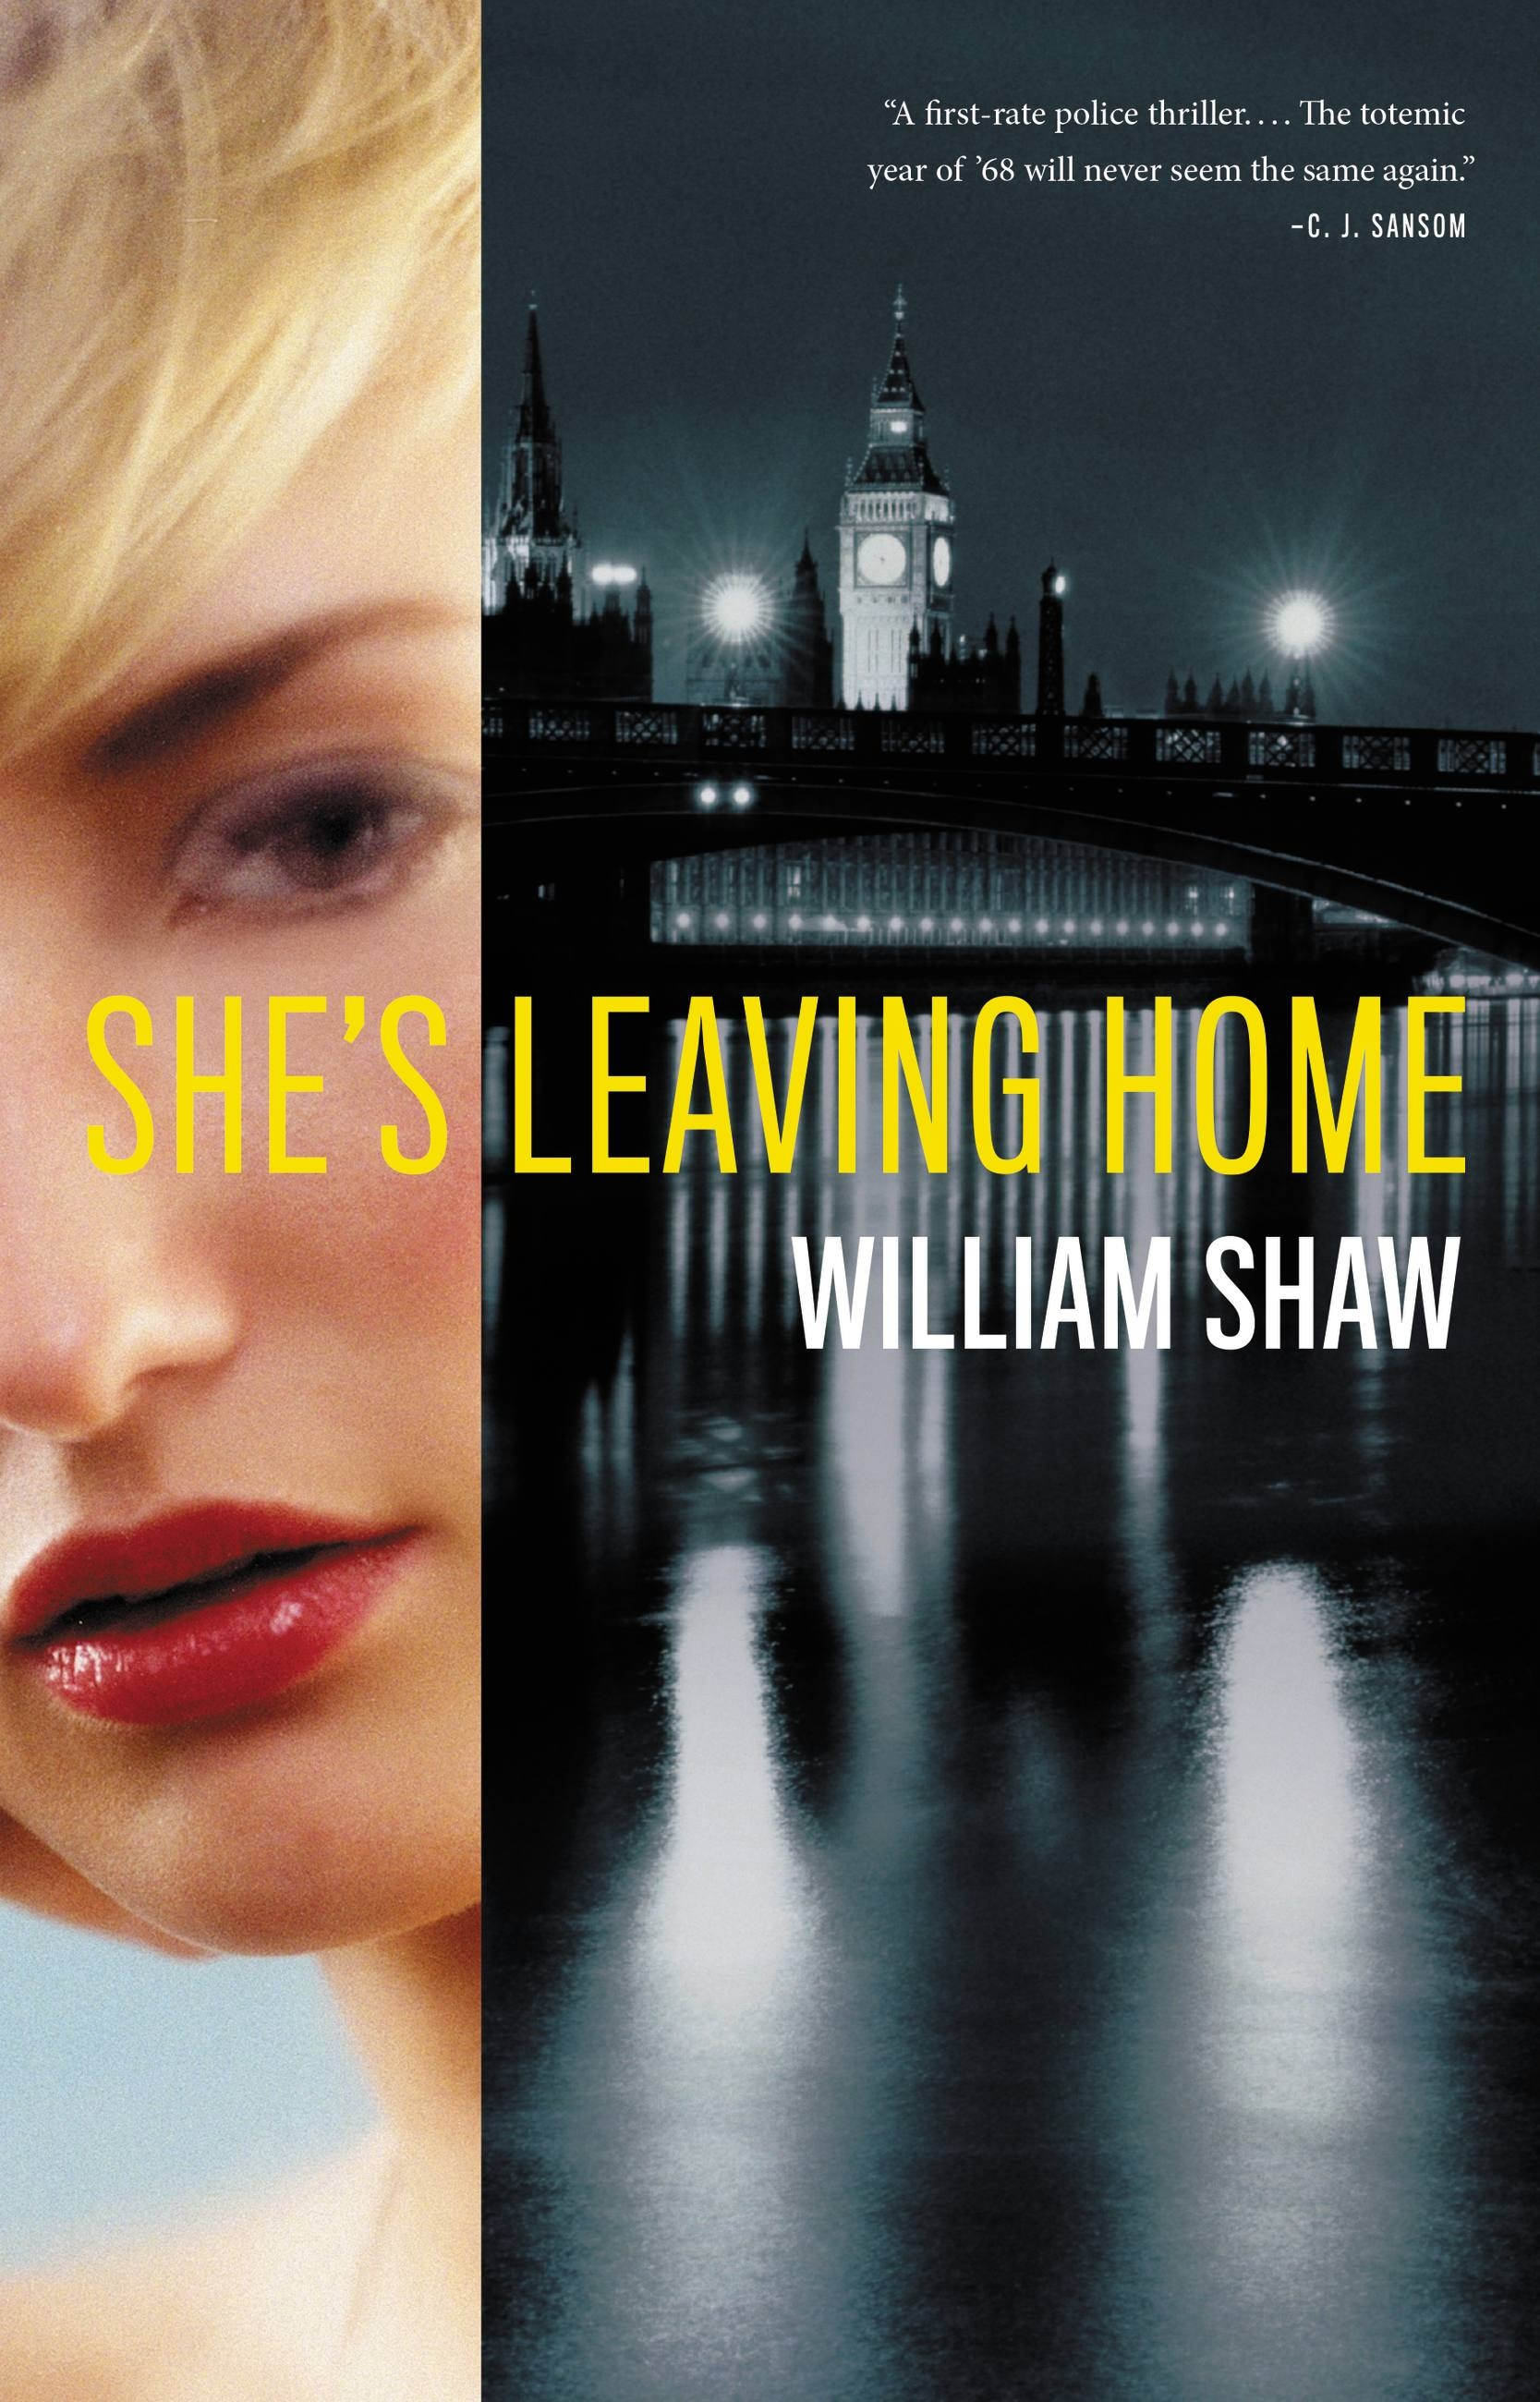 Shes Leaving Home (1994)